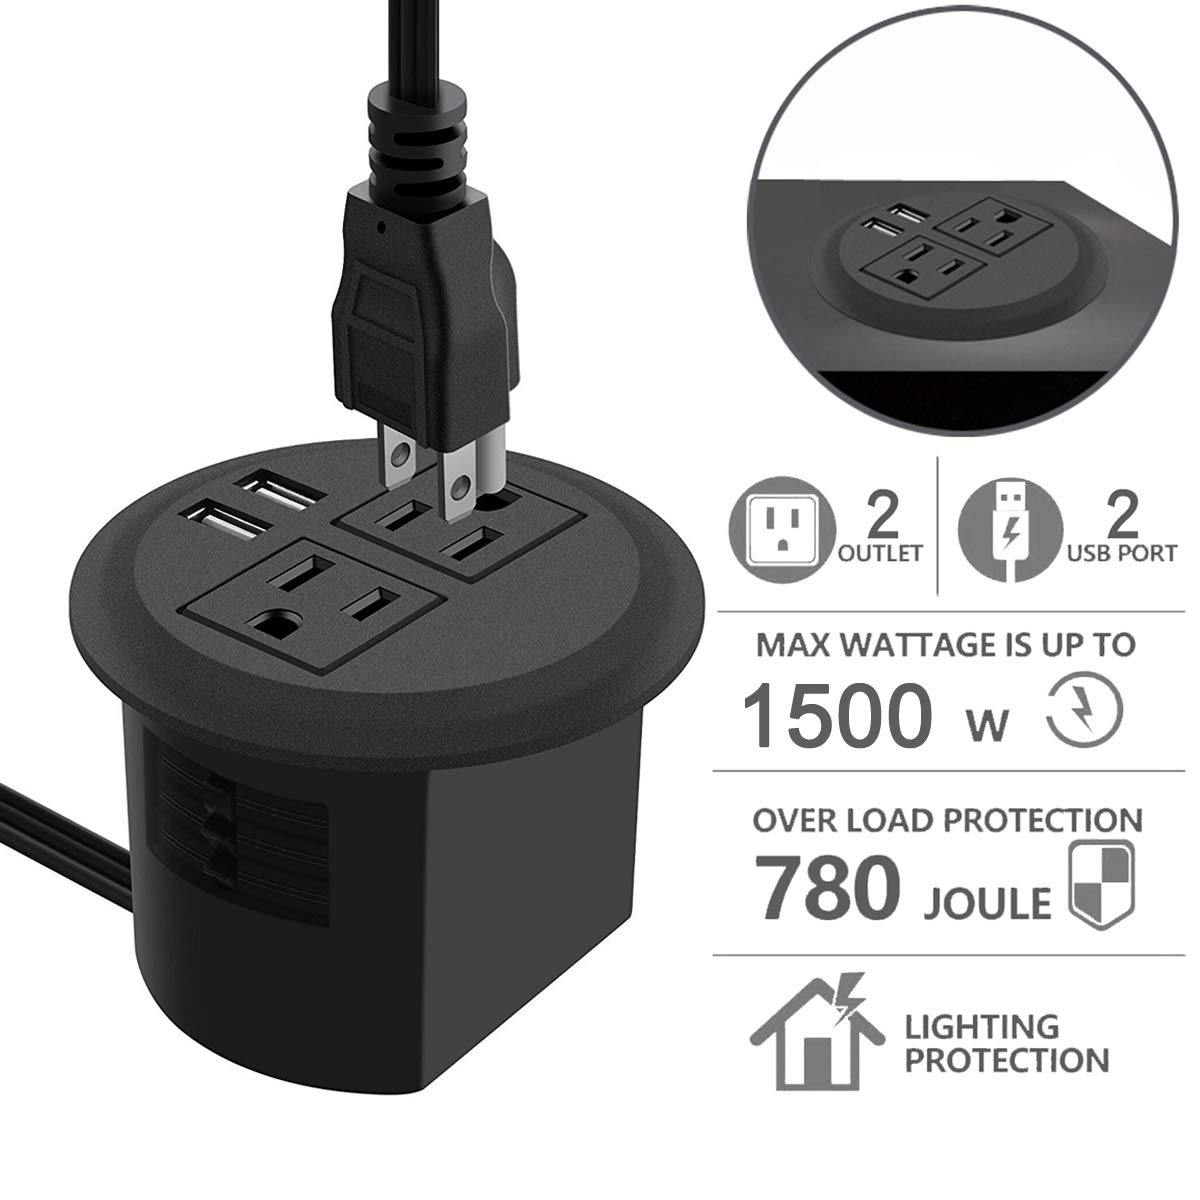 Desktop Power Grommet with USB,Recessed Power Socket with 2 AC Outlets and 2 USB Charging Ports. Desk Grommet Outlet 3in Hole,for Kitchen Table/Conference Room Outlet by Jgstkcity